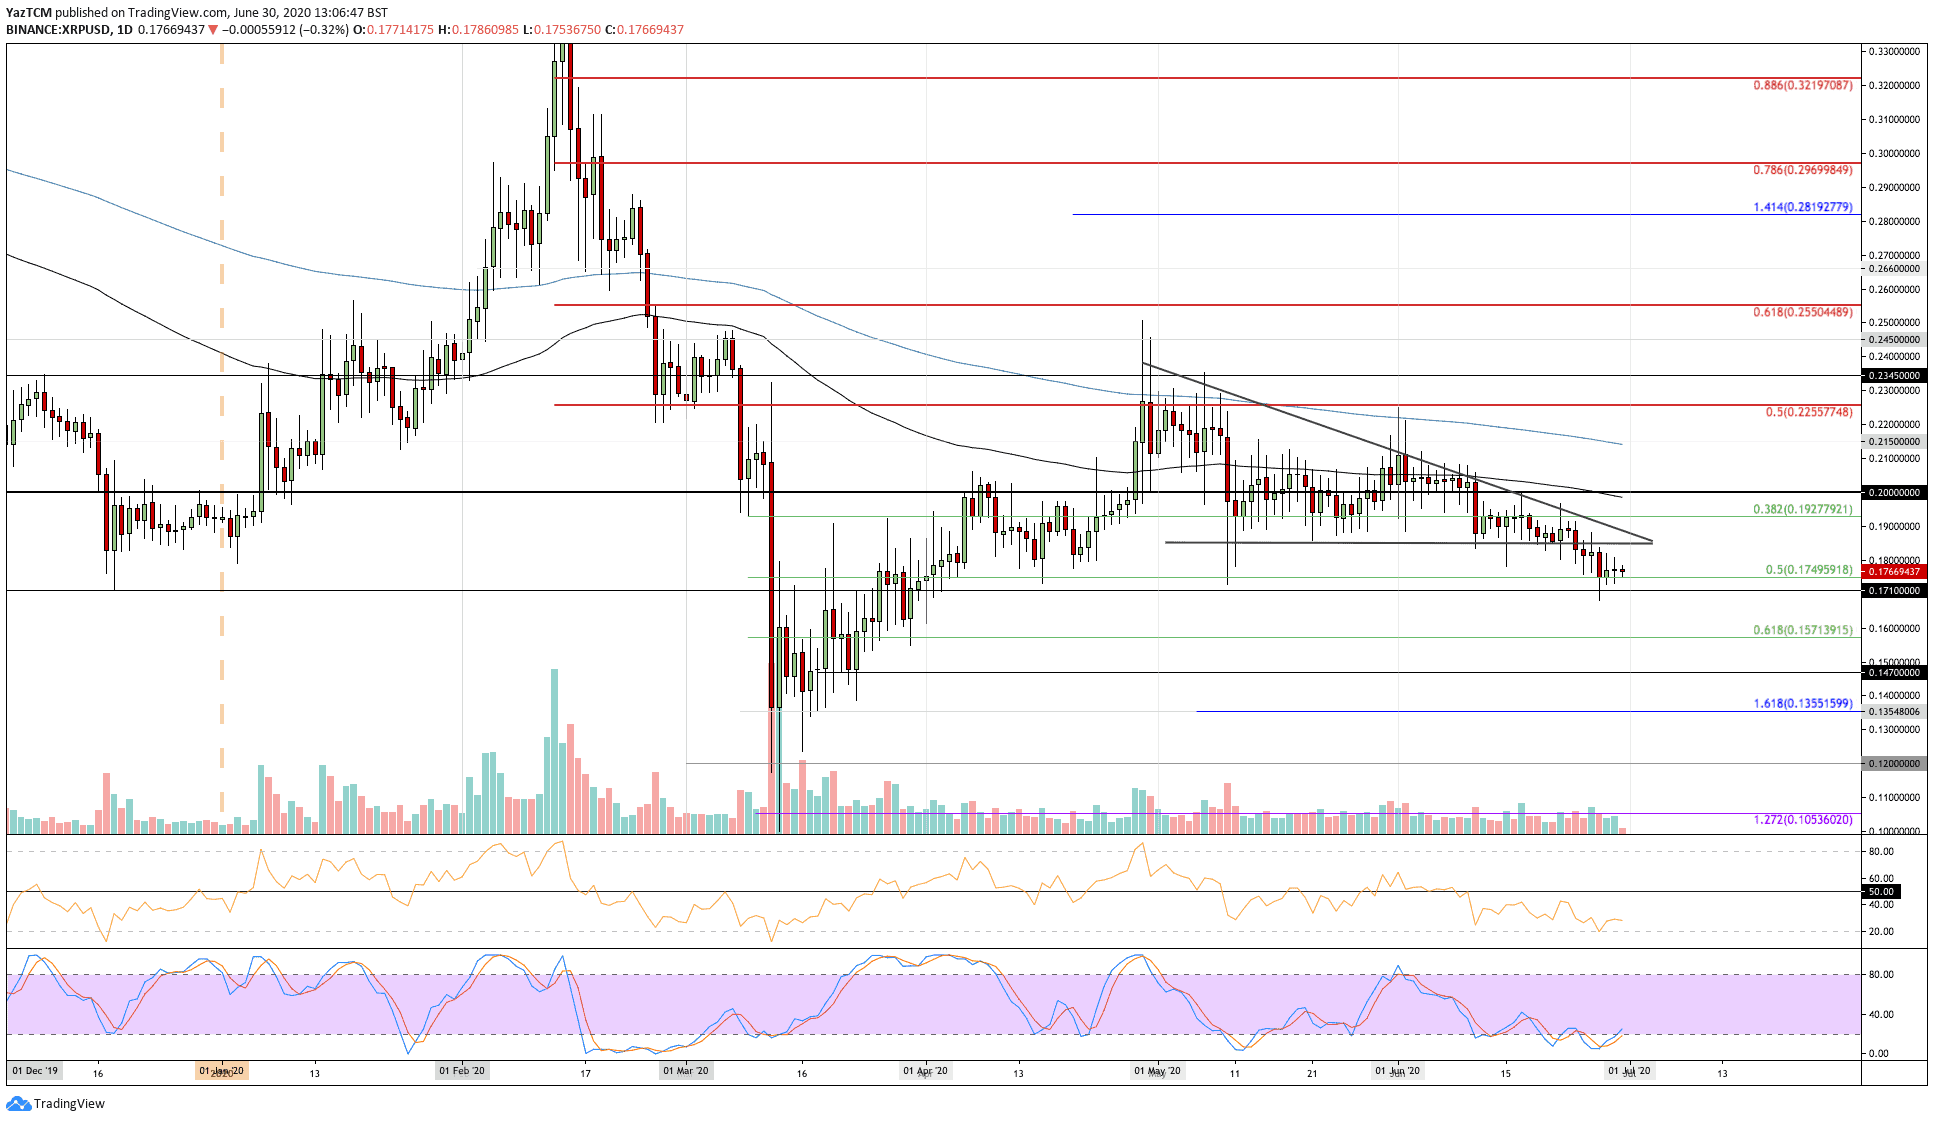 Ripple Price Analysis: Can The Bulls Prevent XRP From Slipping Towards $0.15?